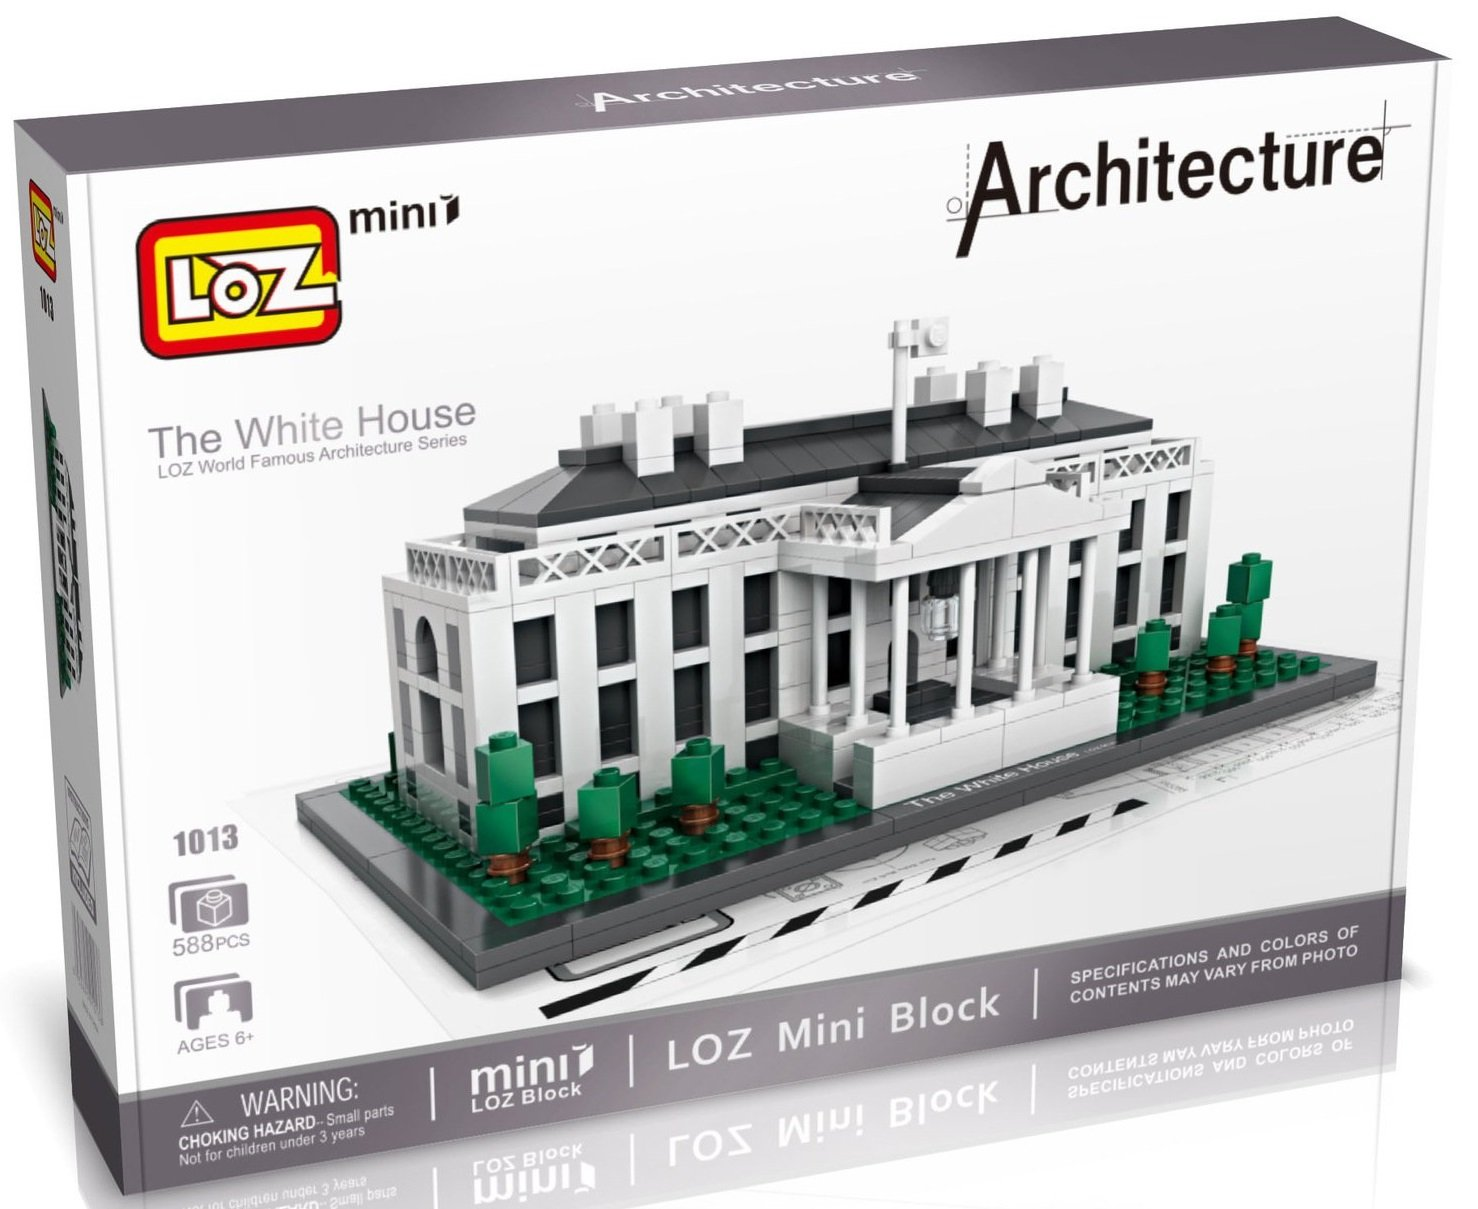 Loz 1013 Architecture 21006 White House Xp Hnh Nh Trng 588 Khi Lego The Gi R